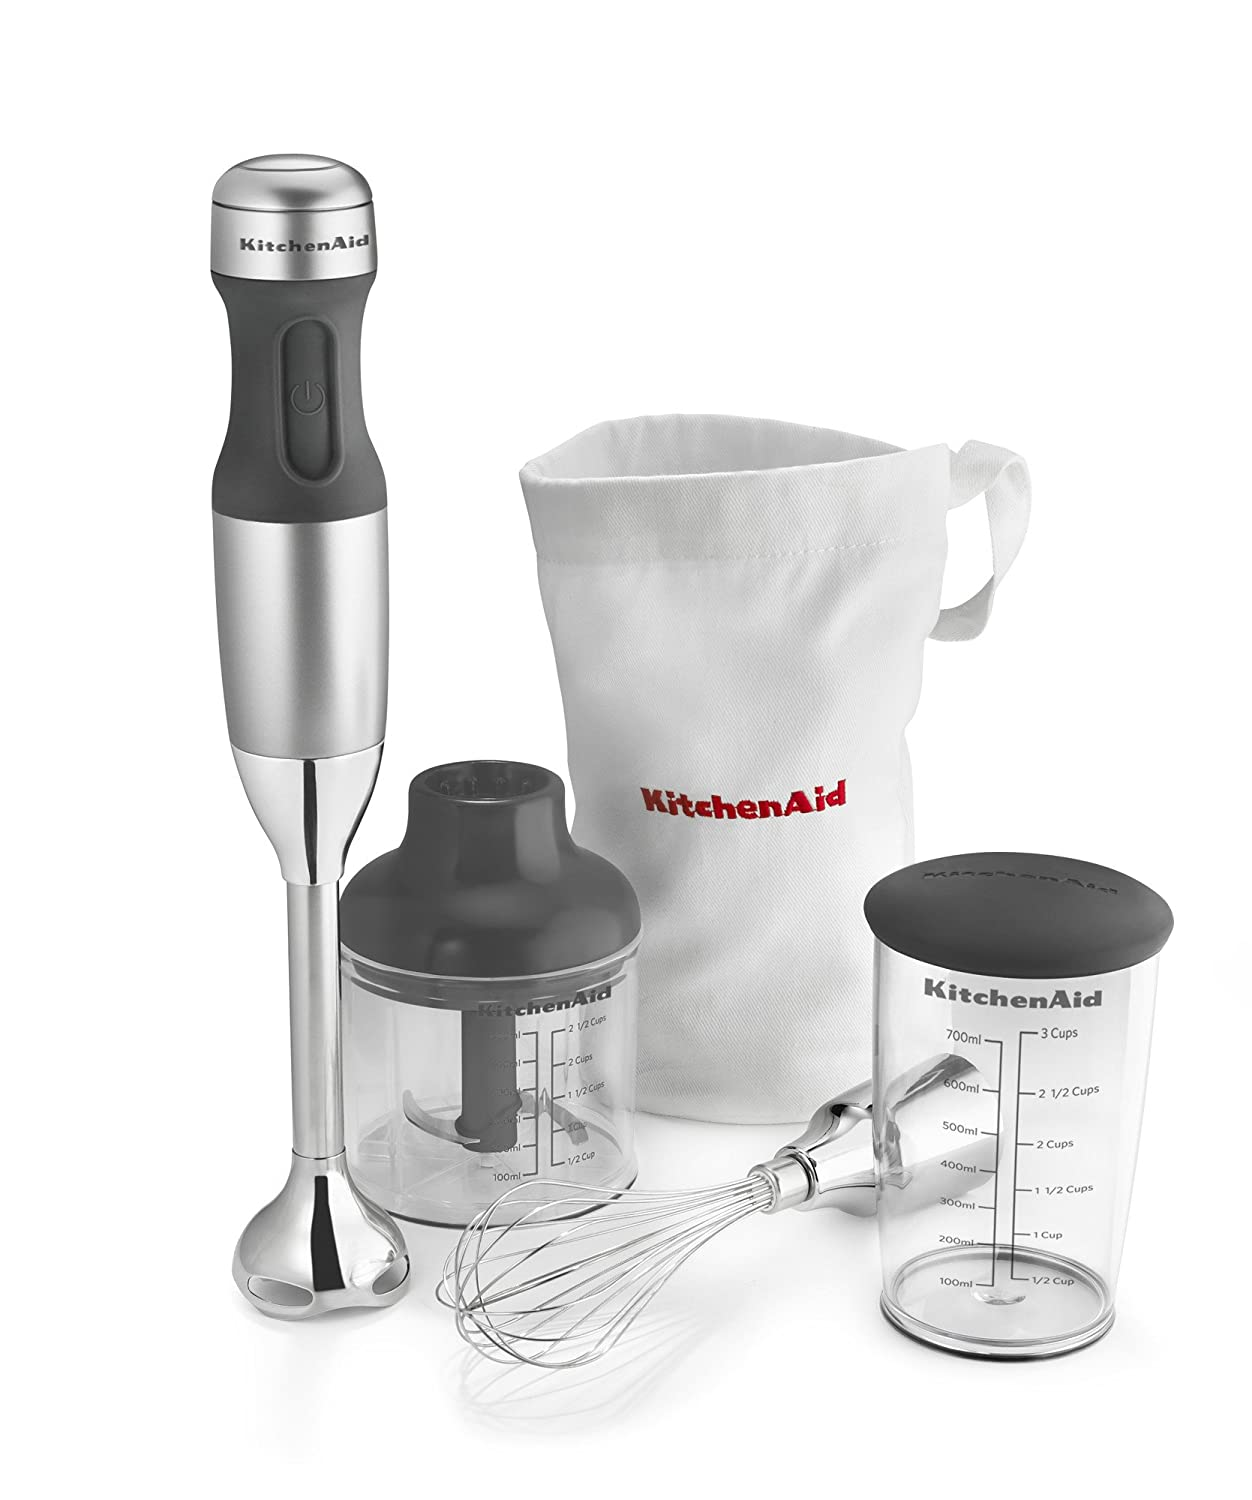 KitchenAid 3 Speed Immersion Kitchen Hand Blender Set Silver